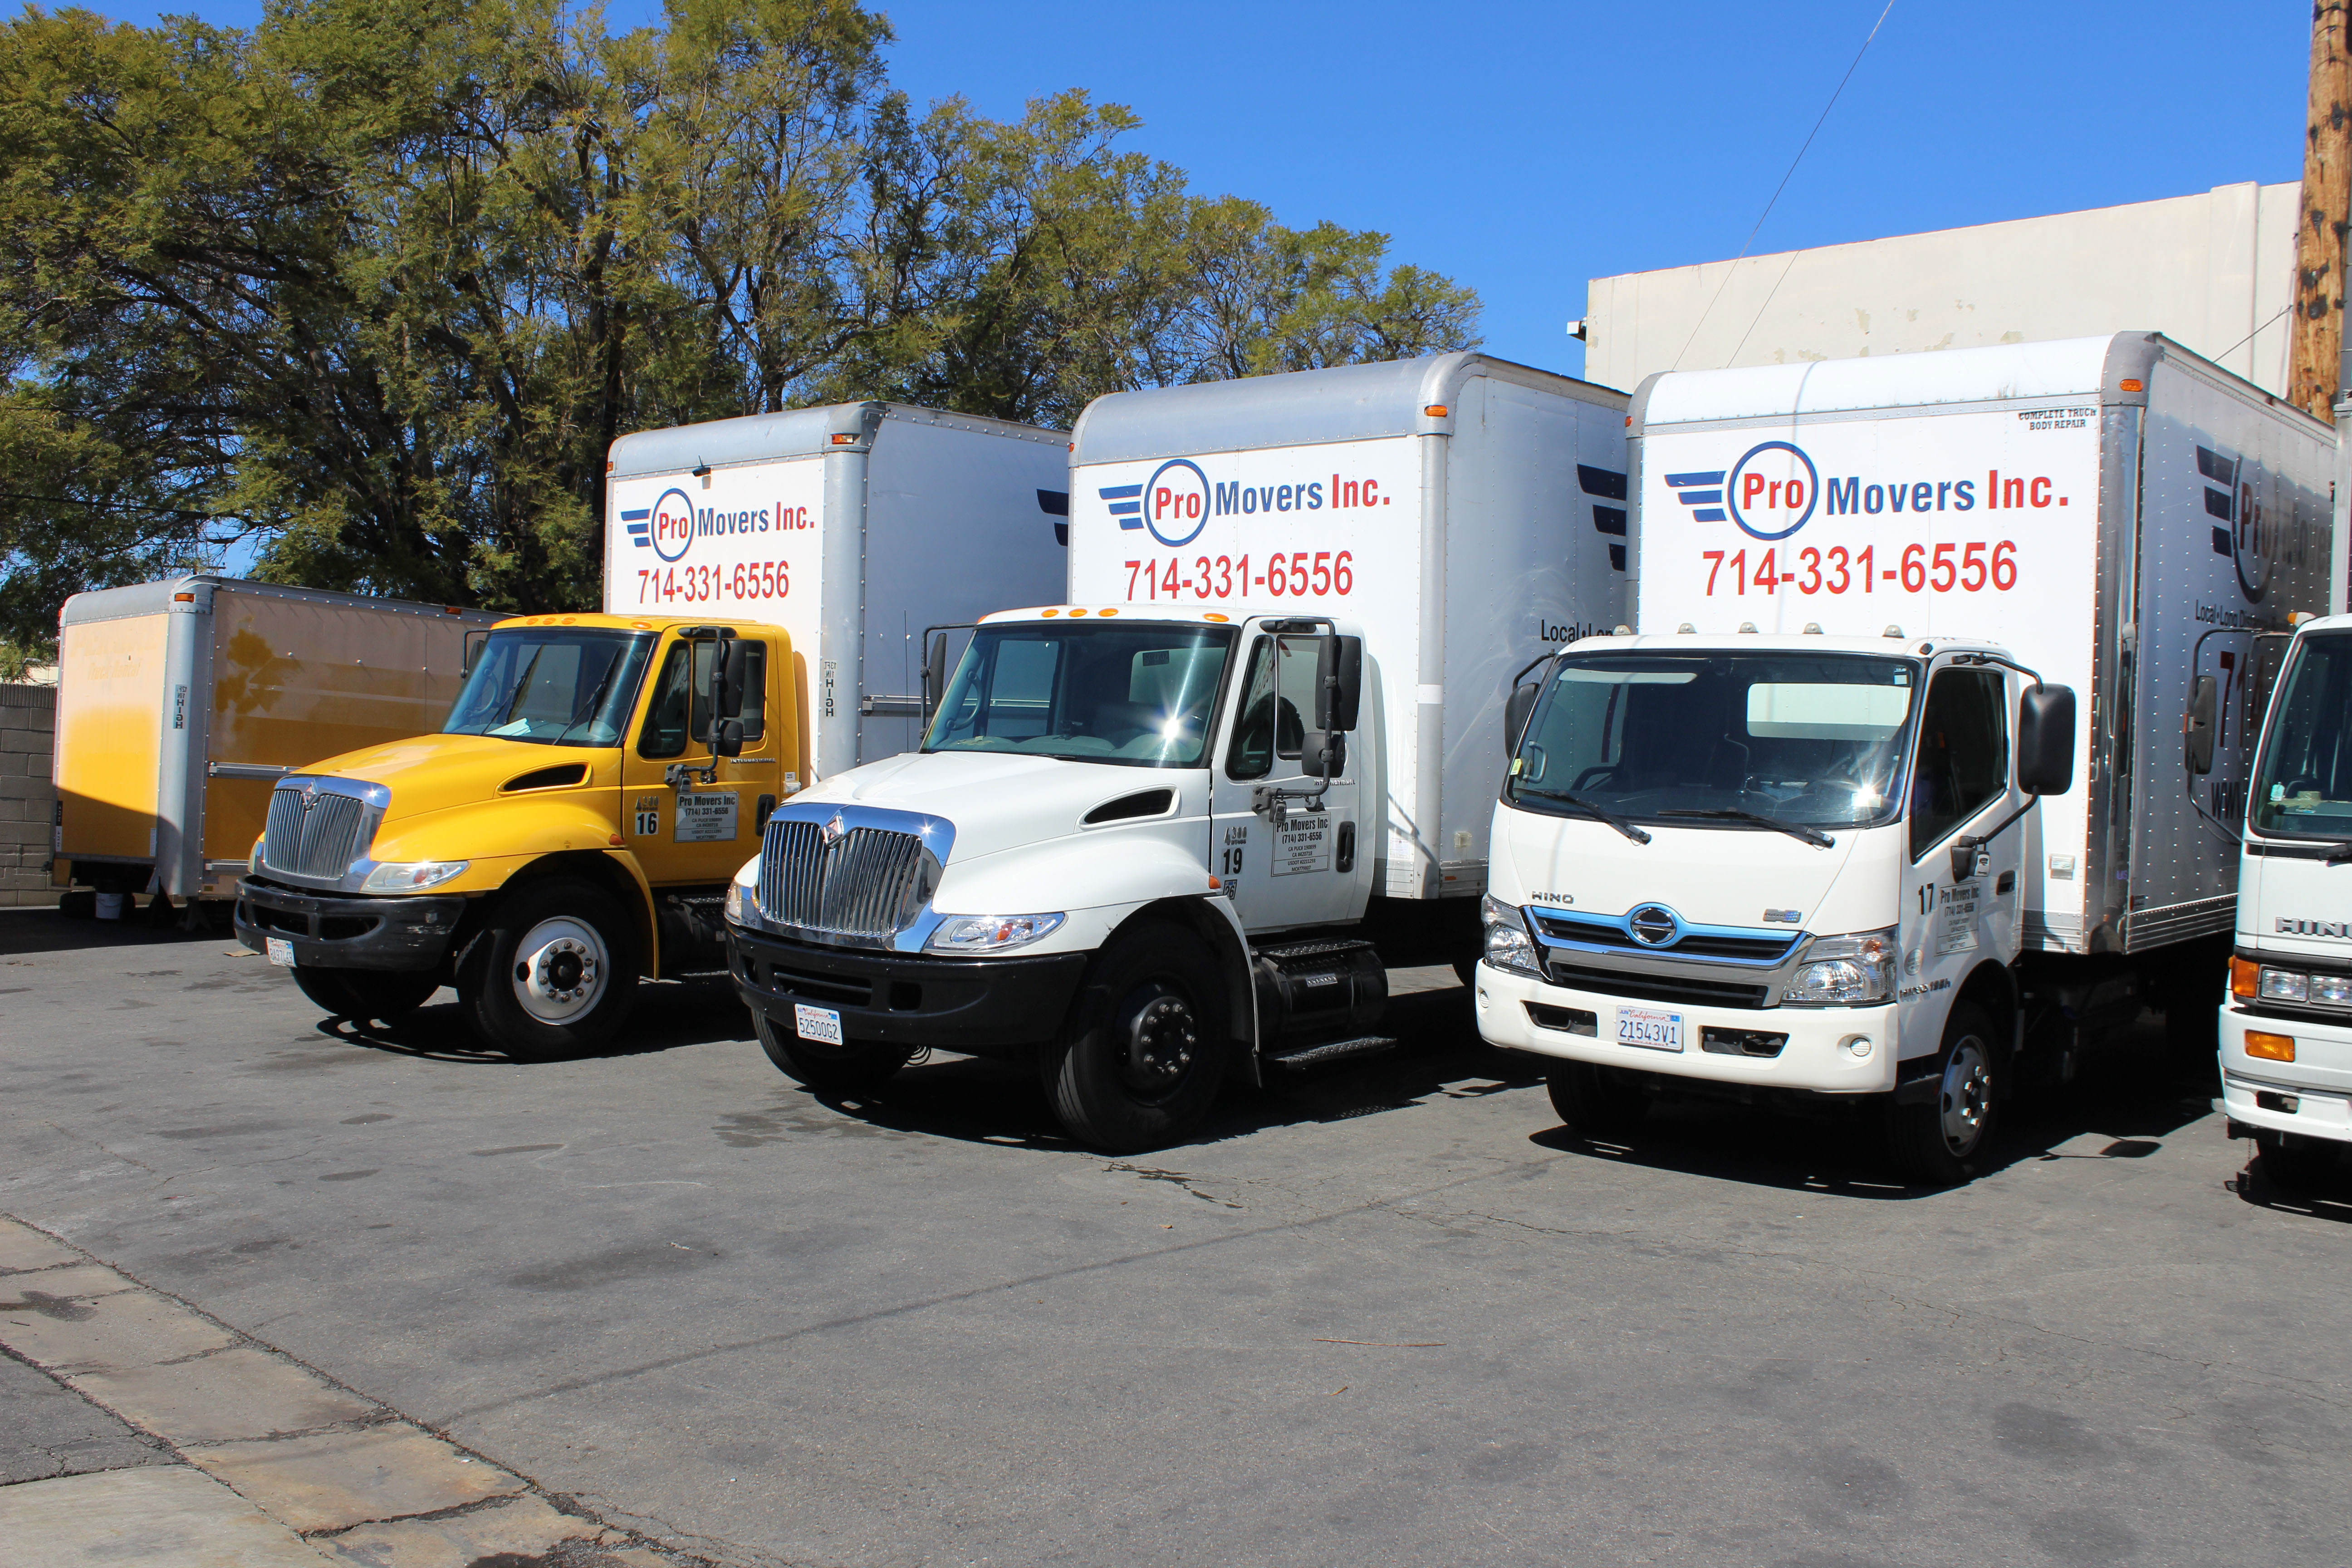 No more stress during residential moving with Pro Movers truck park.